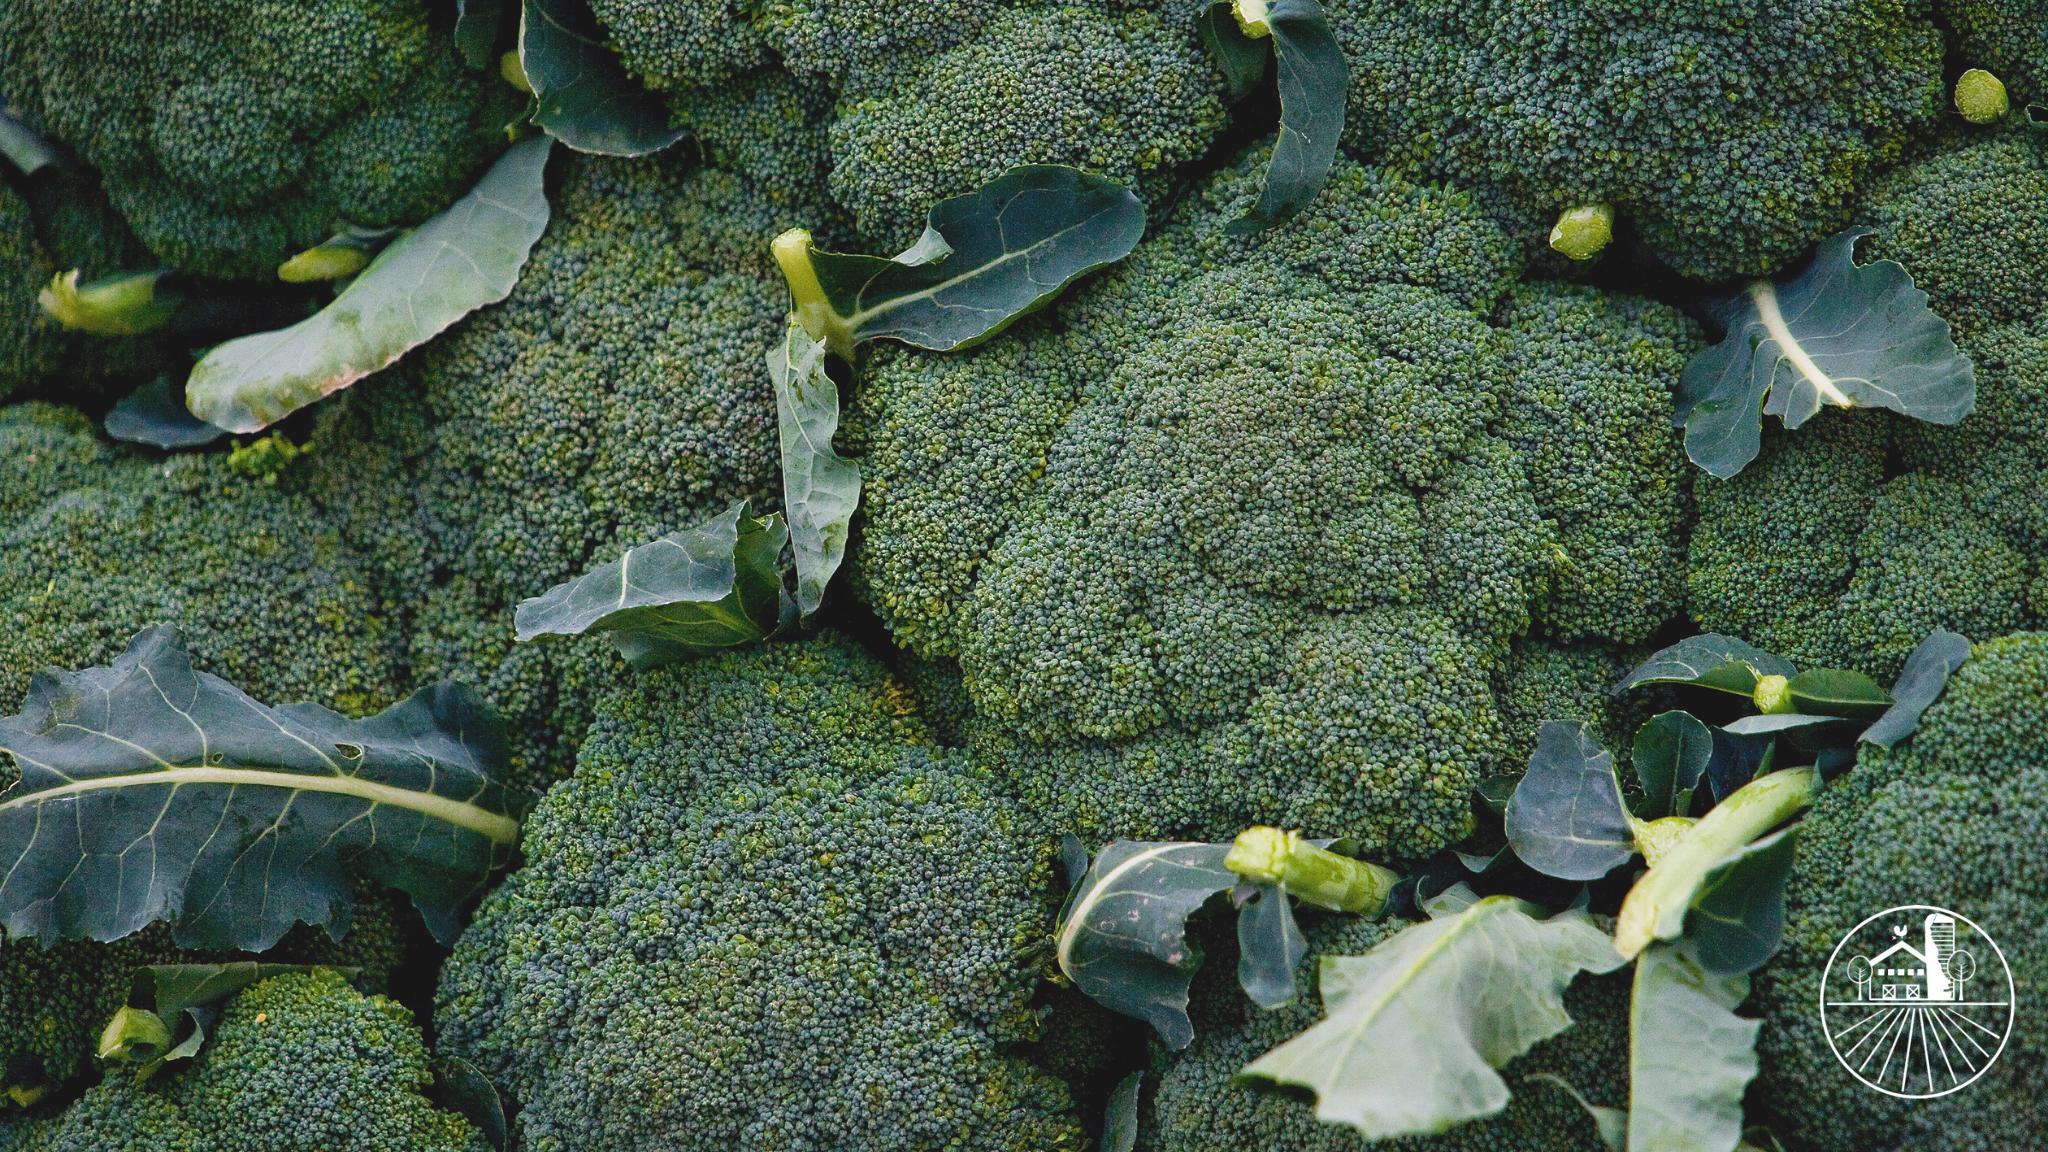 Green bunches of broccoli